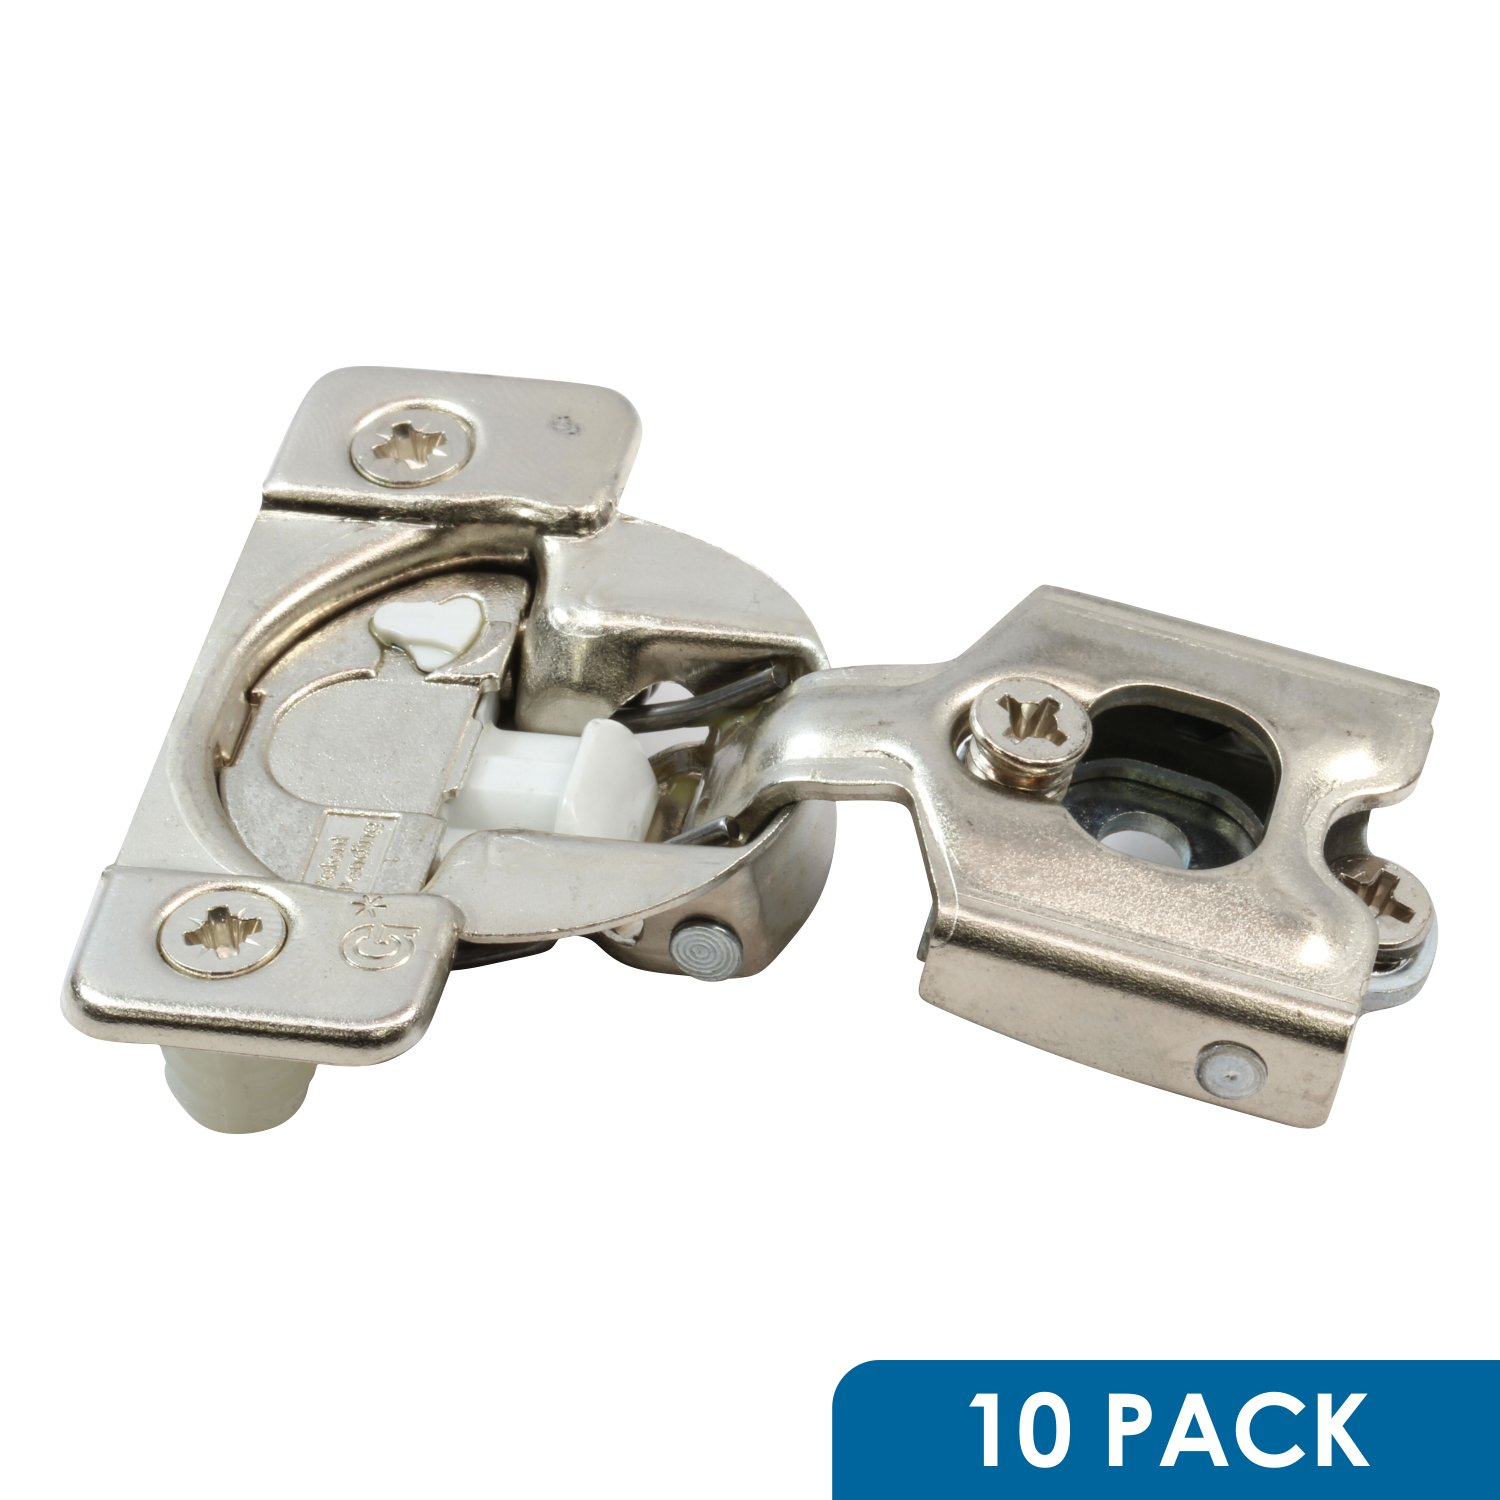 10 Pack Rok Hardware Grass TEC 108 Degree 1/2'' Overlay Soft Close Press in Compact Wrap Mount Cabinet Hinge 02824A-15 3-Way Adjustment 42mm Screw Hole Pattern by Rok